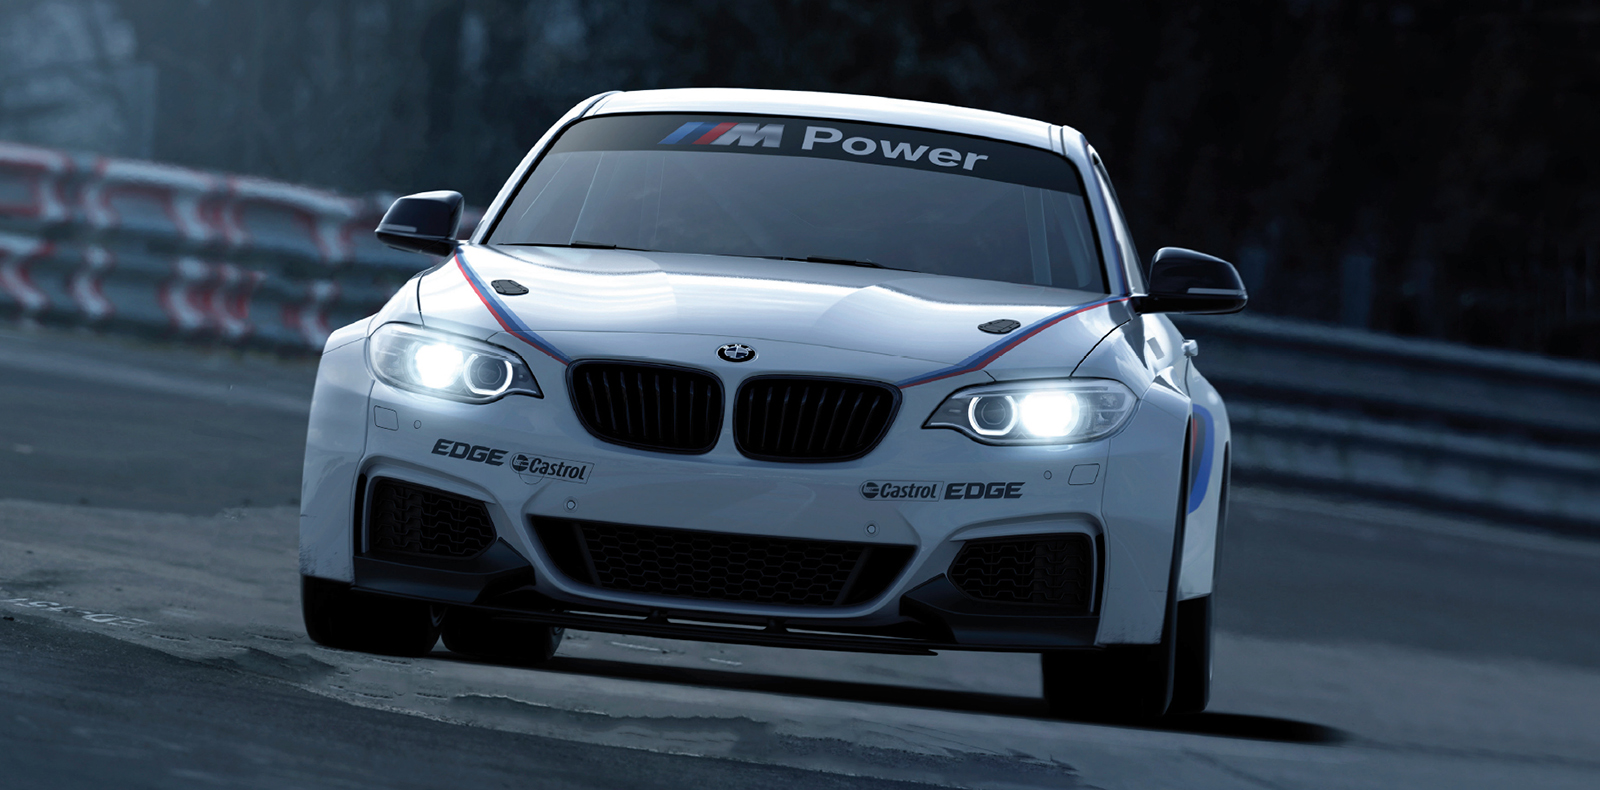 Full BMW M235i Racing Specs and Images